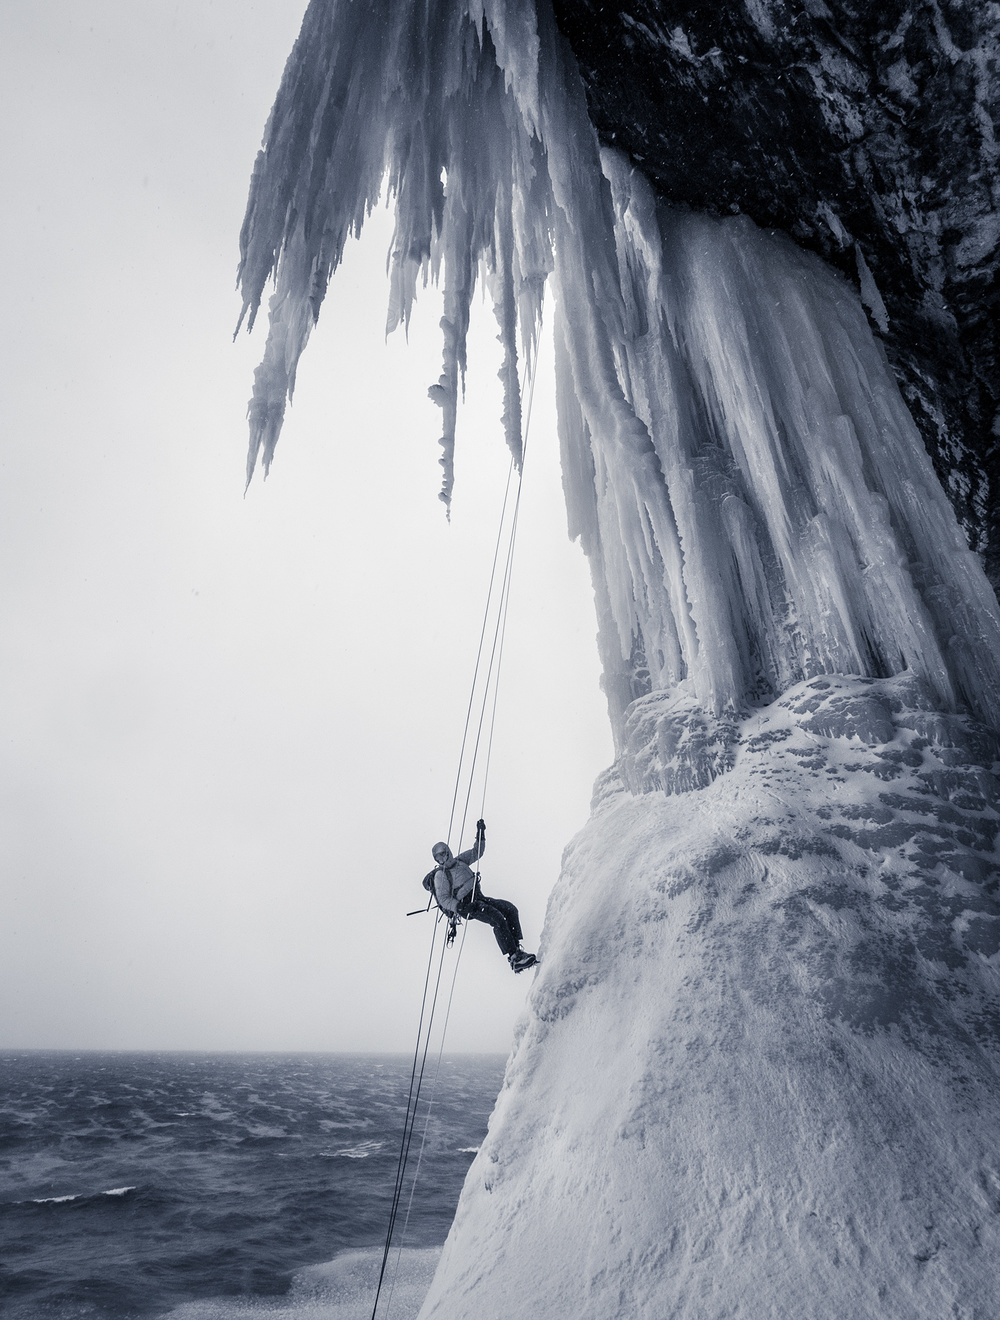 An ice climber rappels down Dairyland over the open water of Lake Superior.